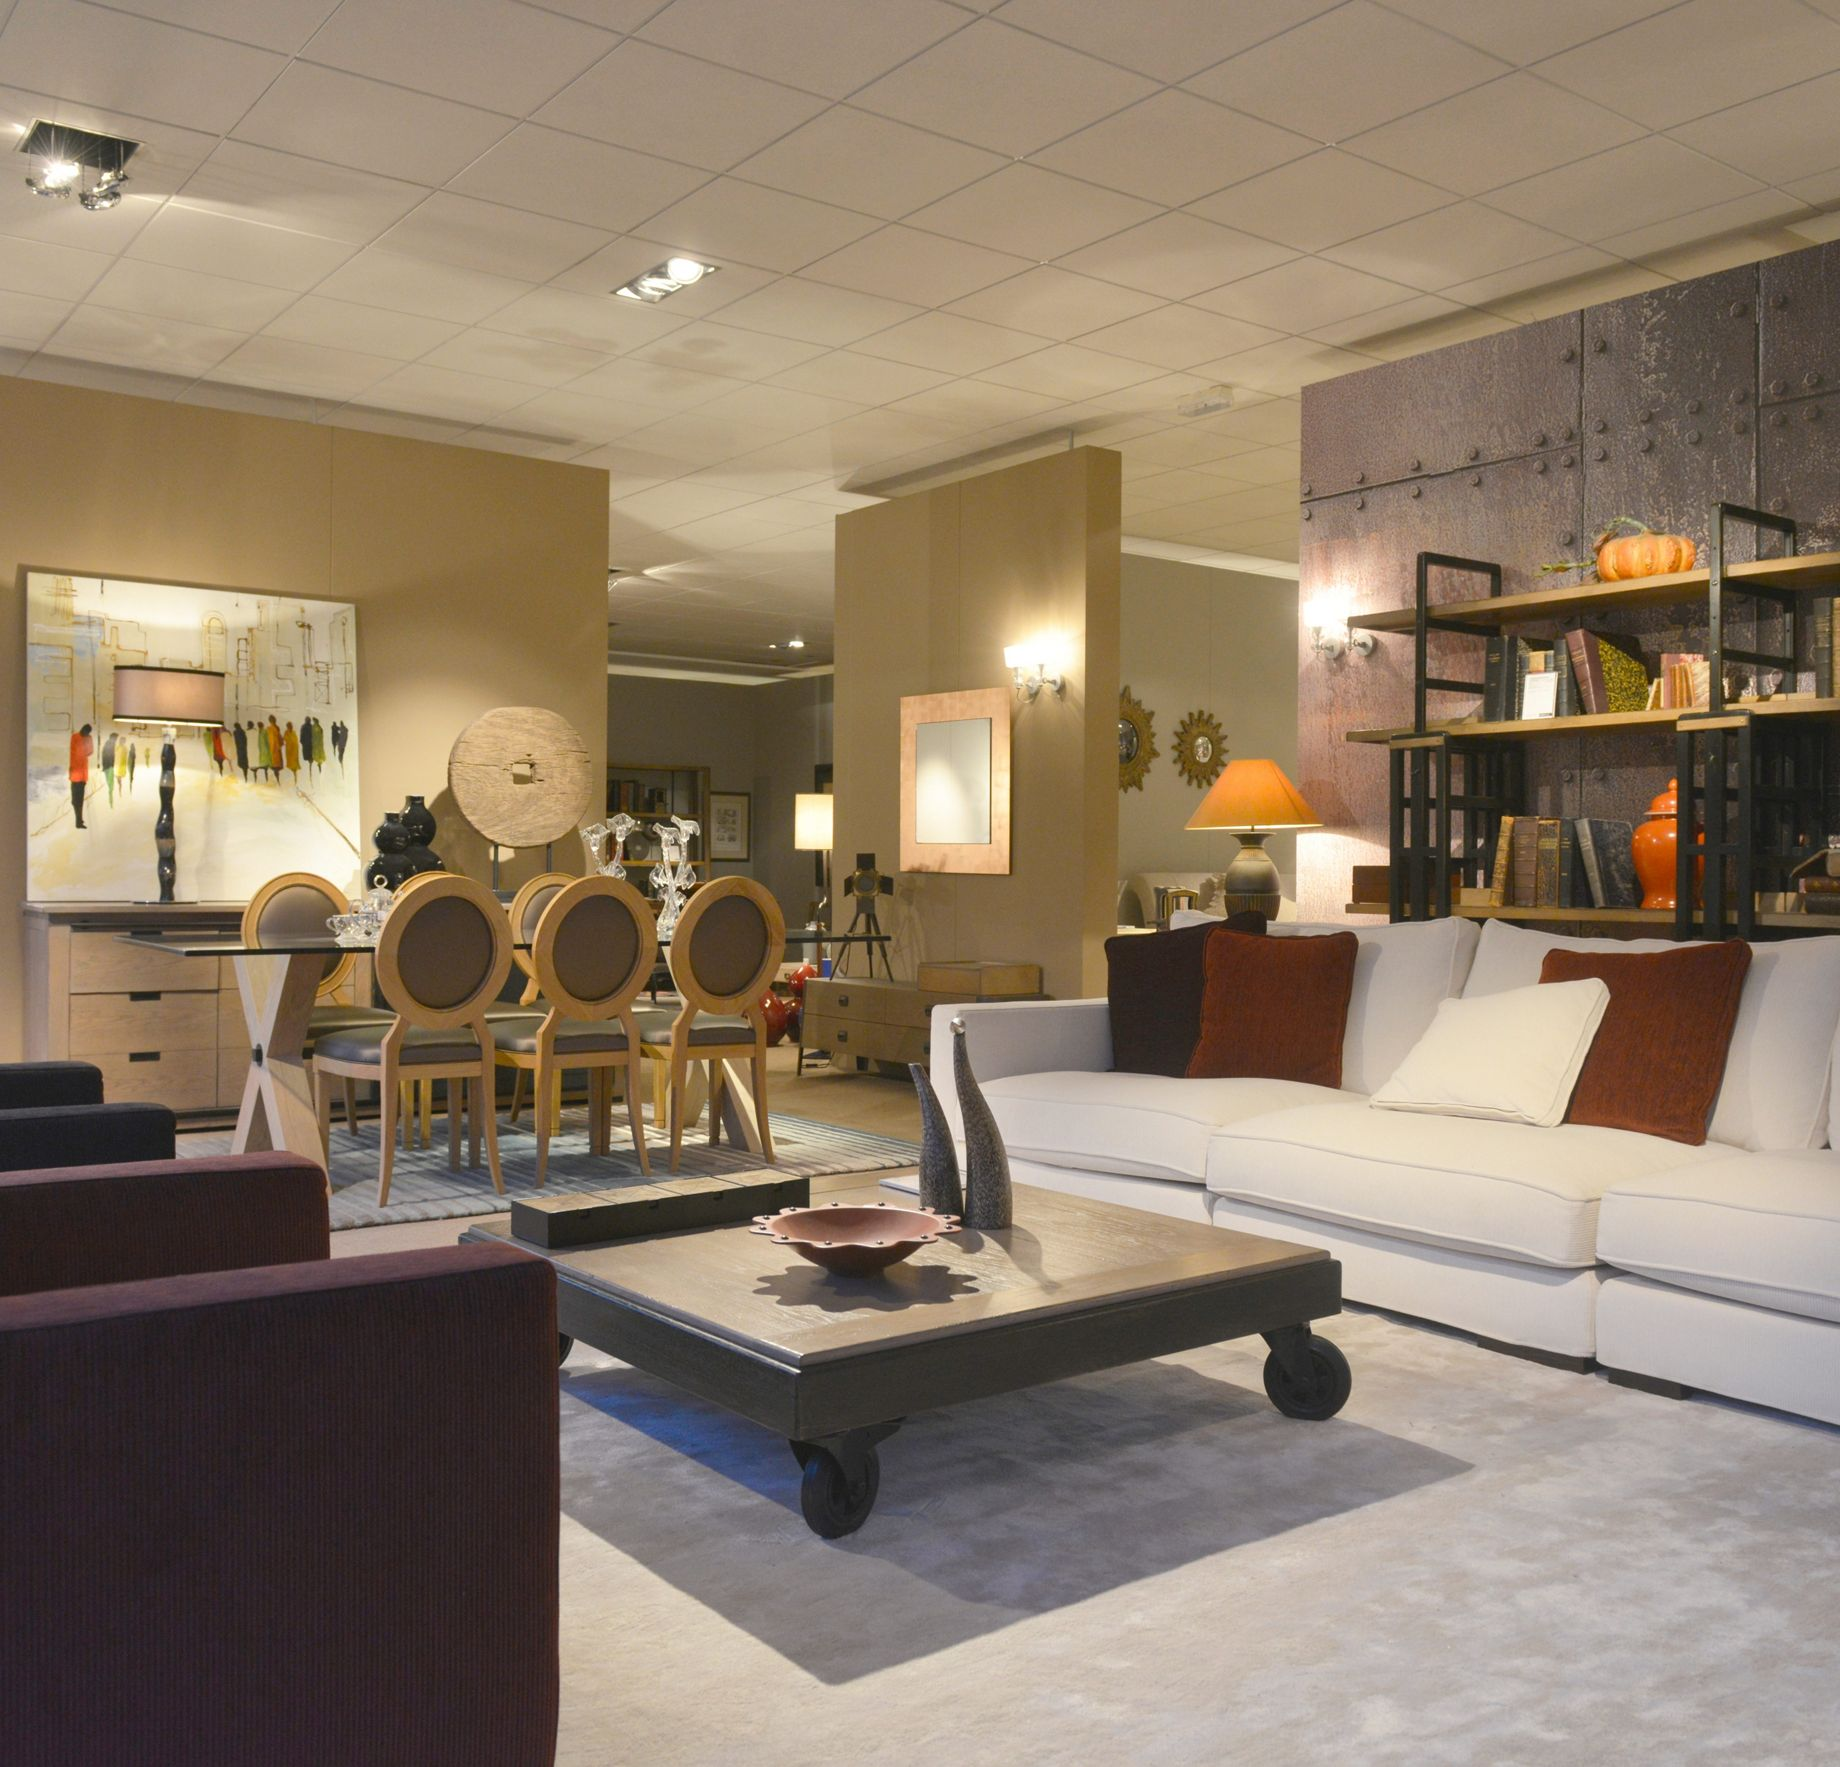 roche bobois showroom grenoble saint egr ve 38120. Black Bedroom Furniture Sets. Home Design Ideas